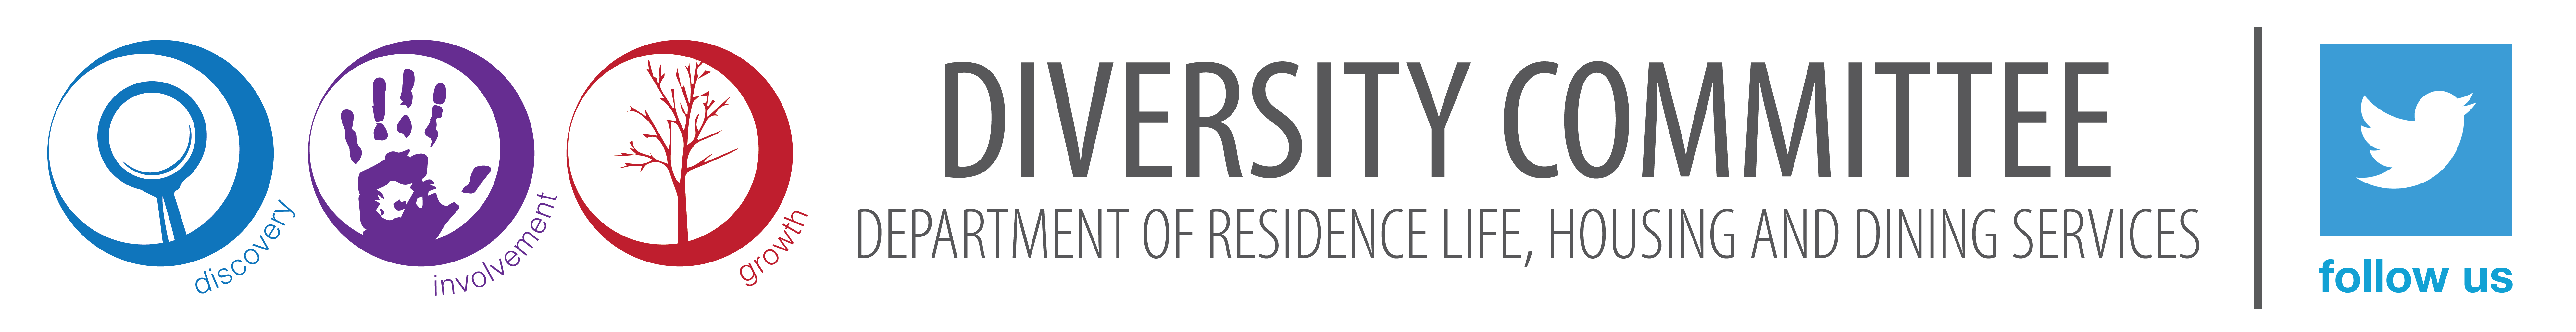 Diversity Committee Logo with embedded Twitter